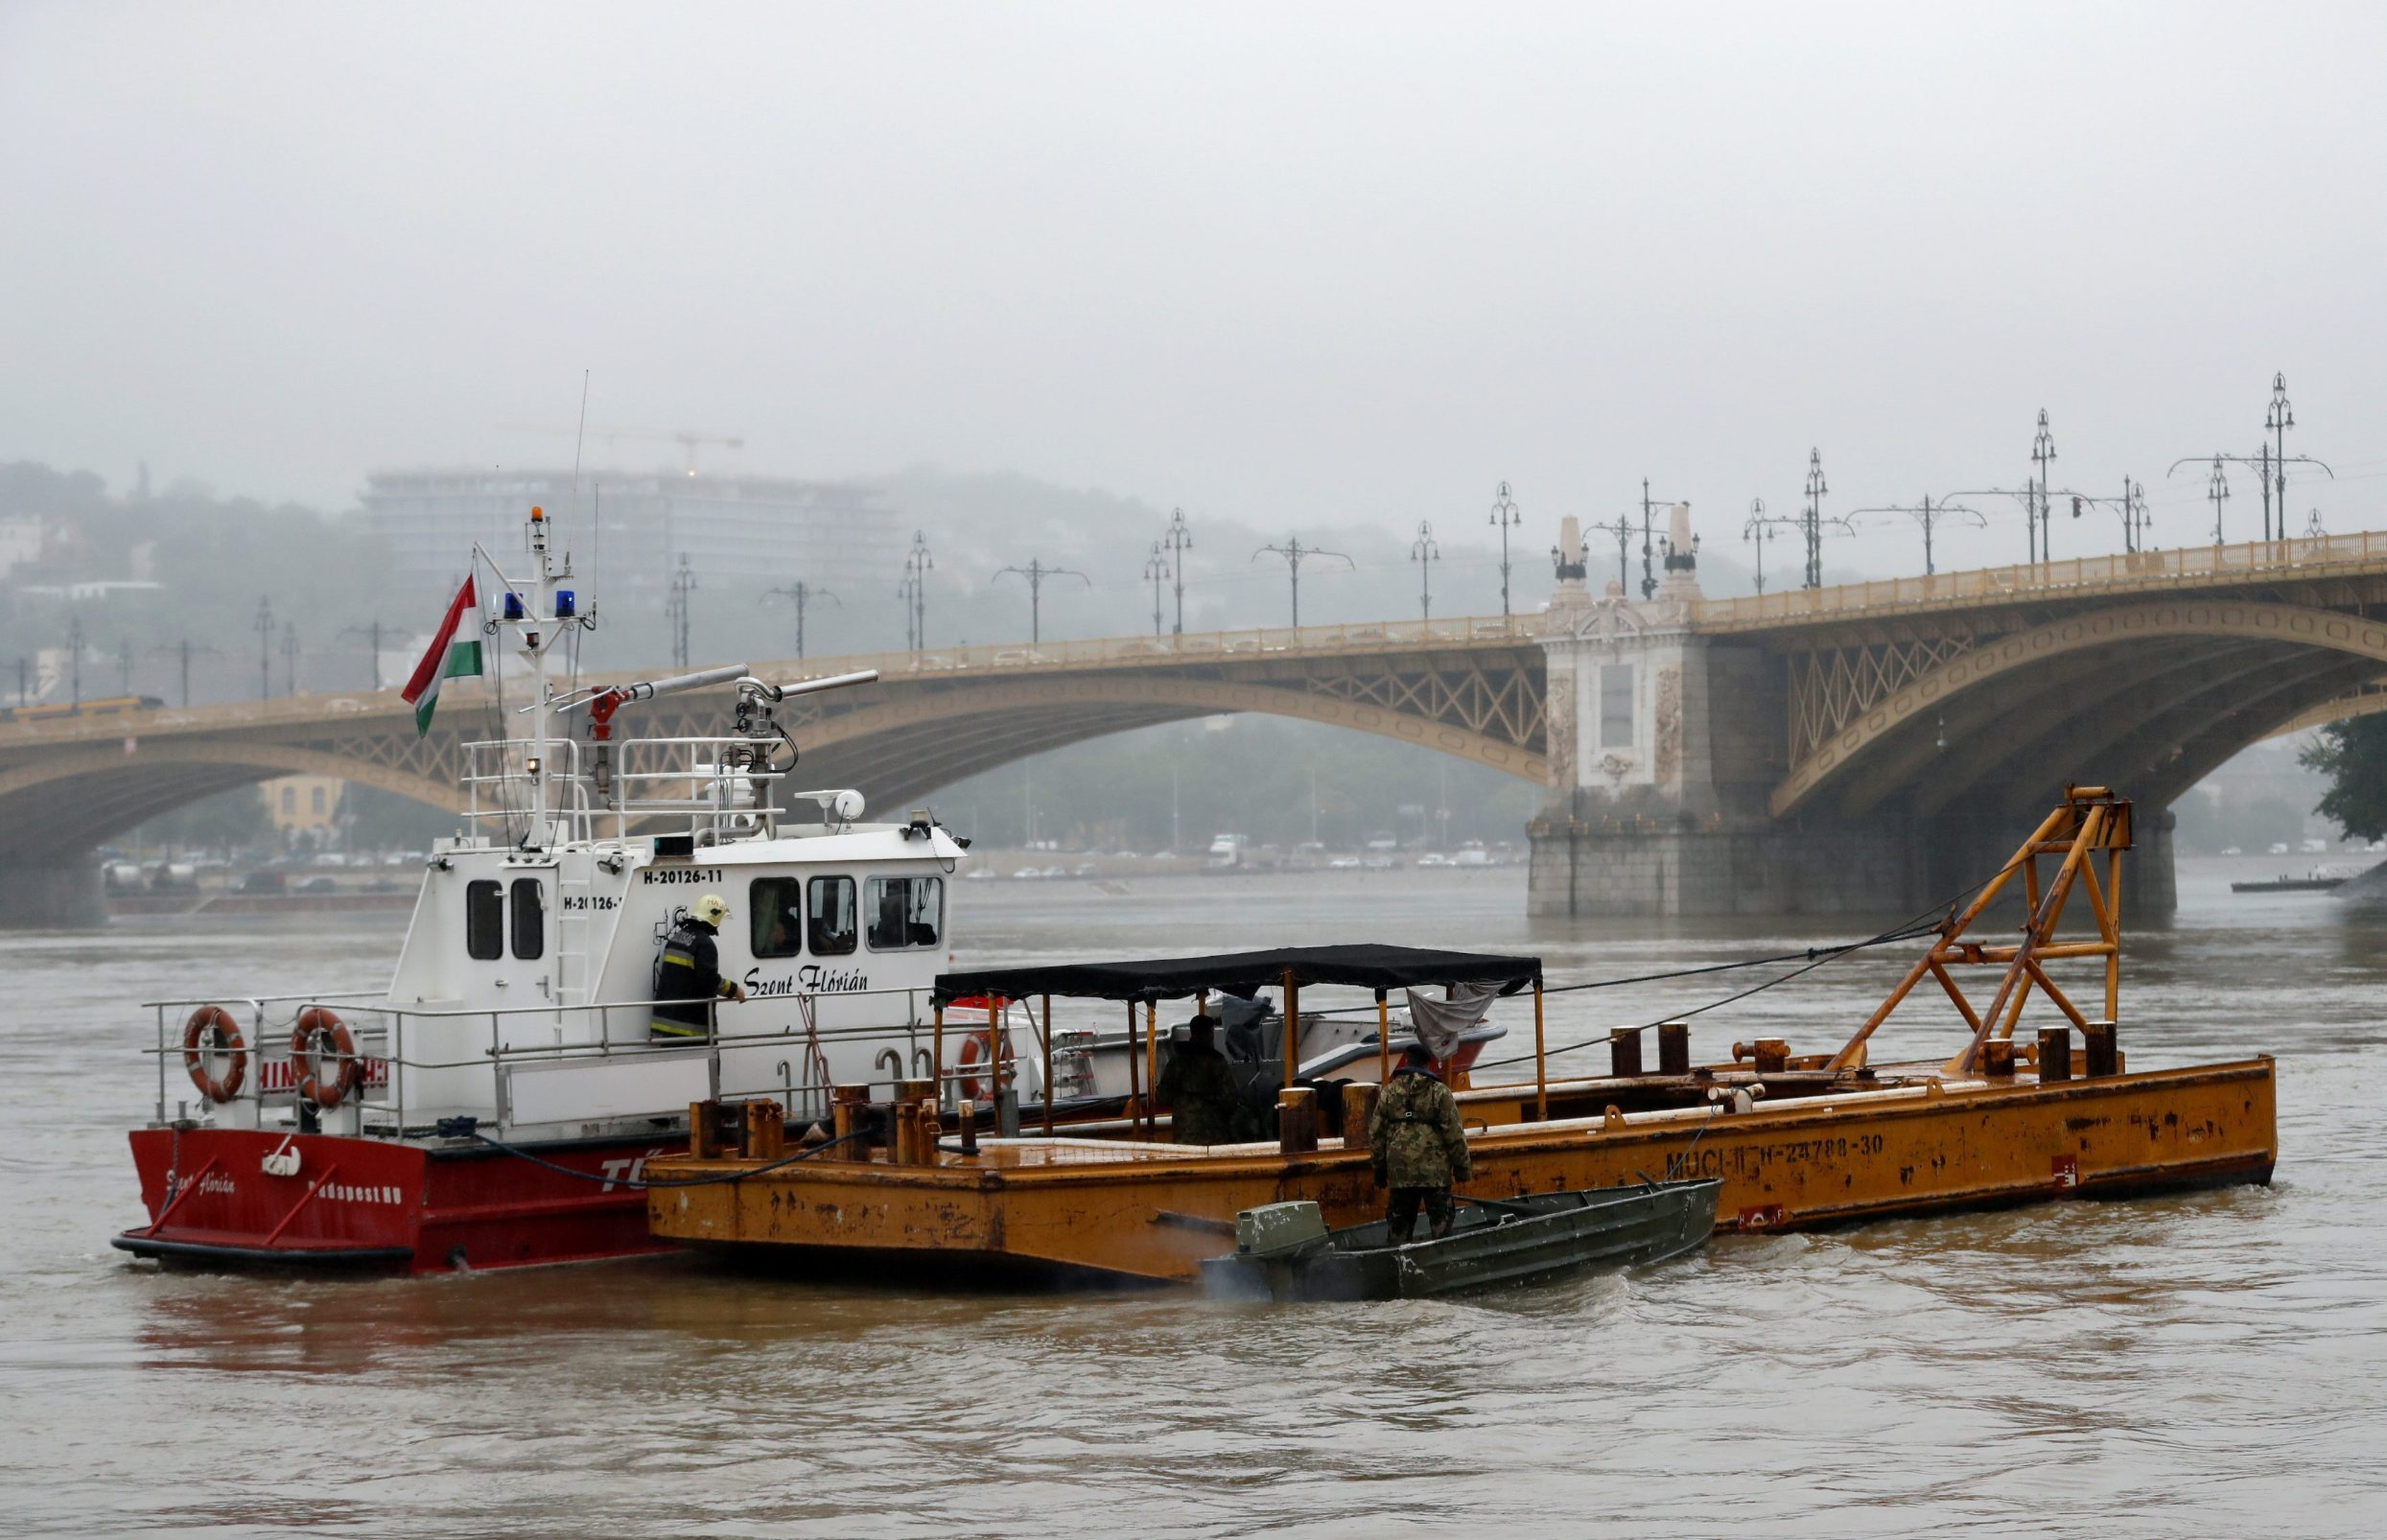 A fire brigade rescue boat is seen after a ship accident that killed several people on the Danube river in Budapest, Hungary, May 30, 2019. REUTERS/Bernadett Szabo